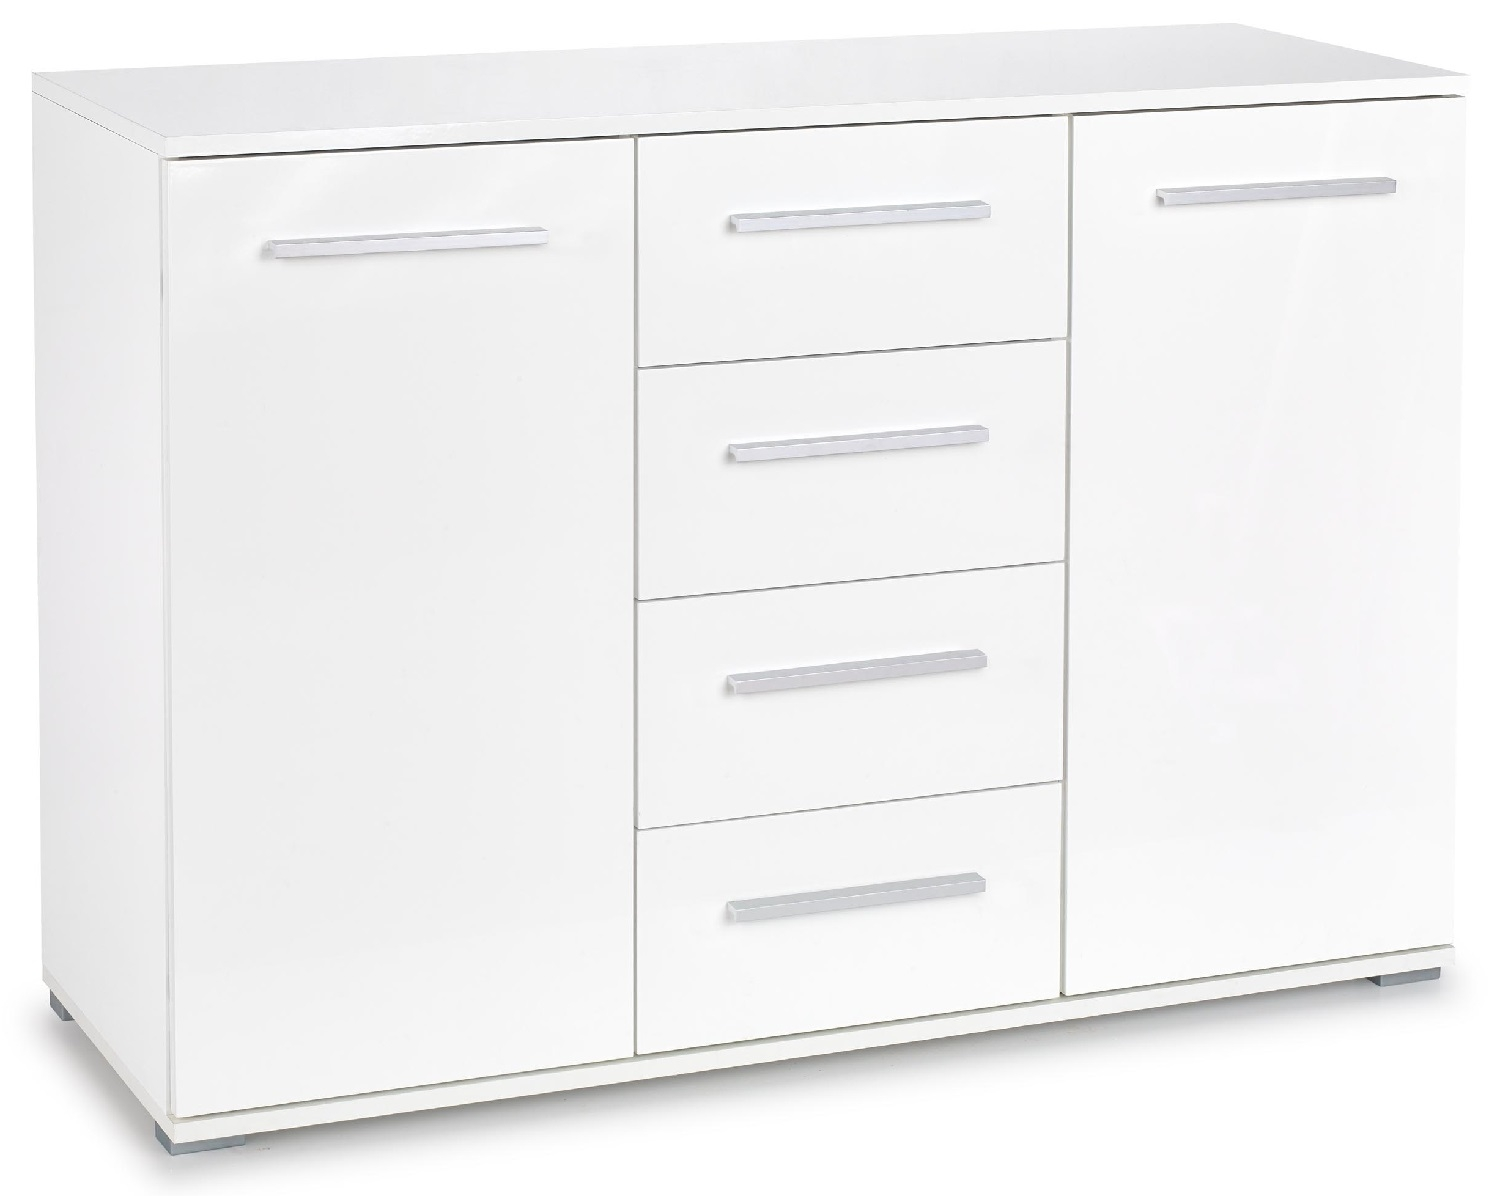 Dressoir Lima 116 cm breed in hoogglans wit | Home Style